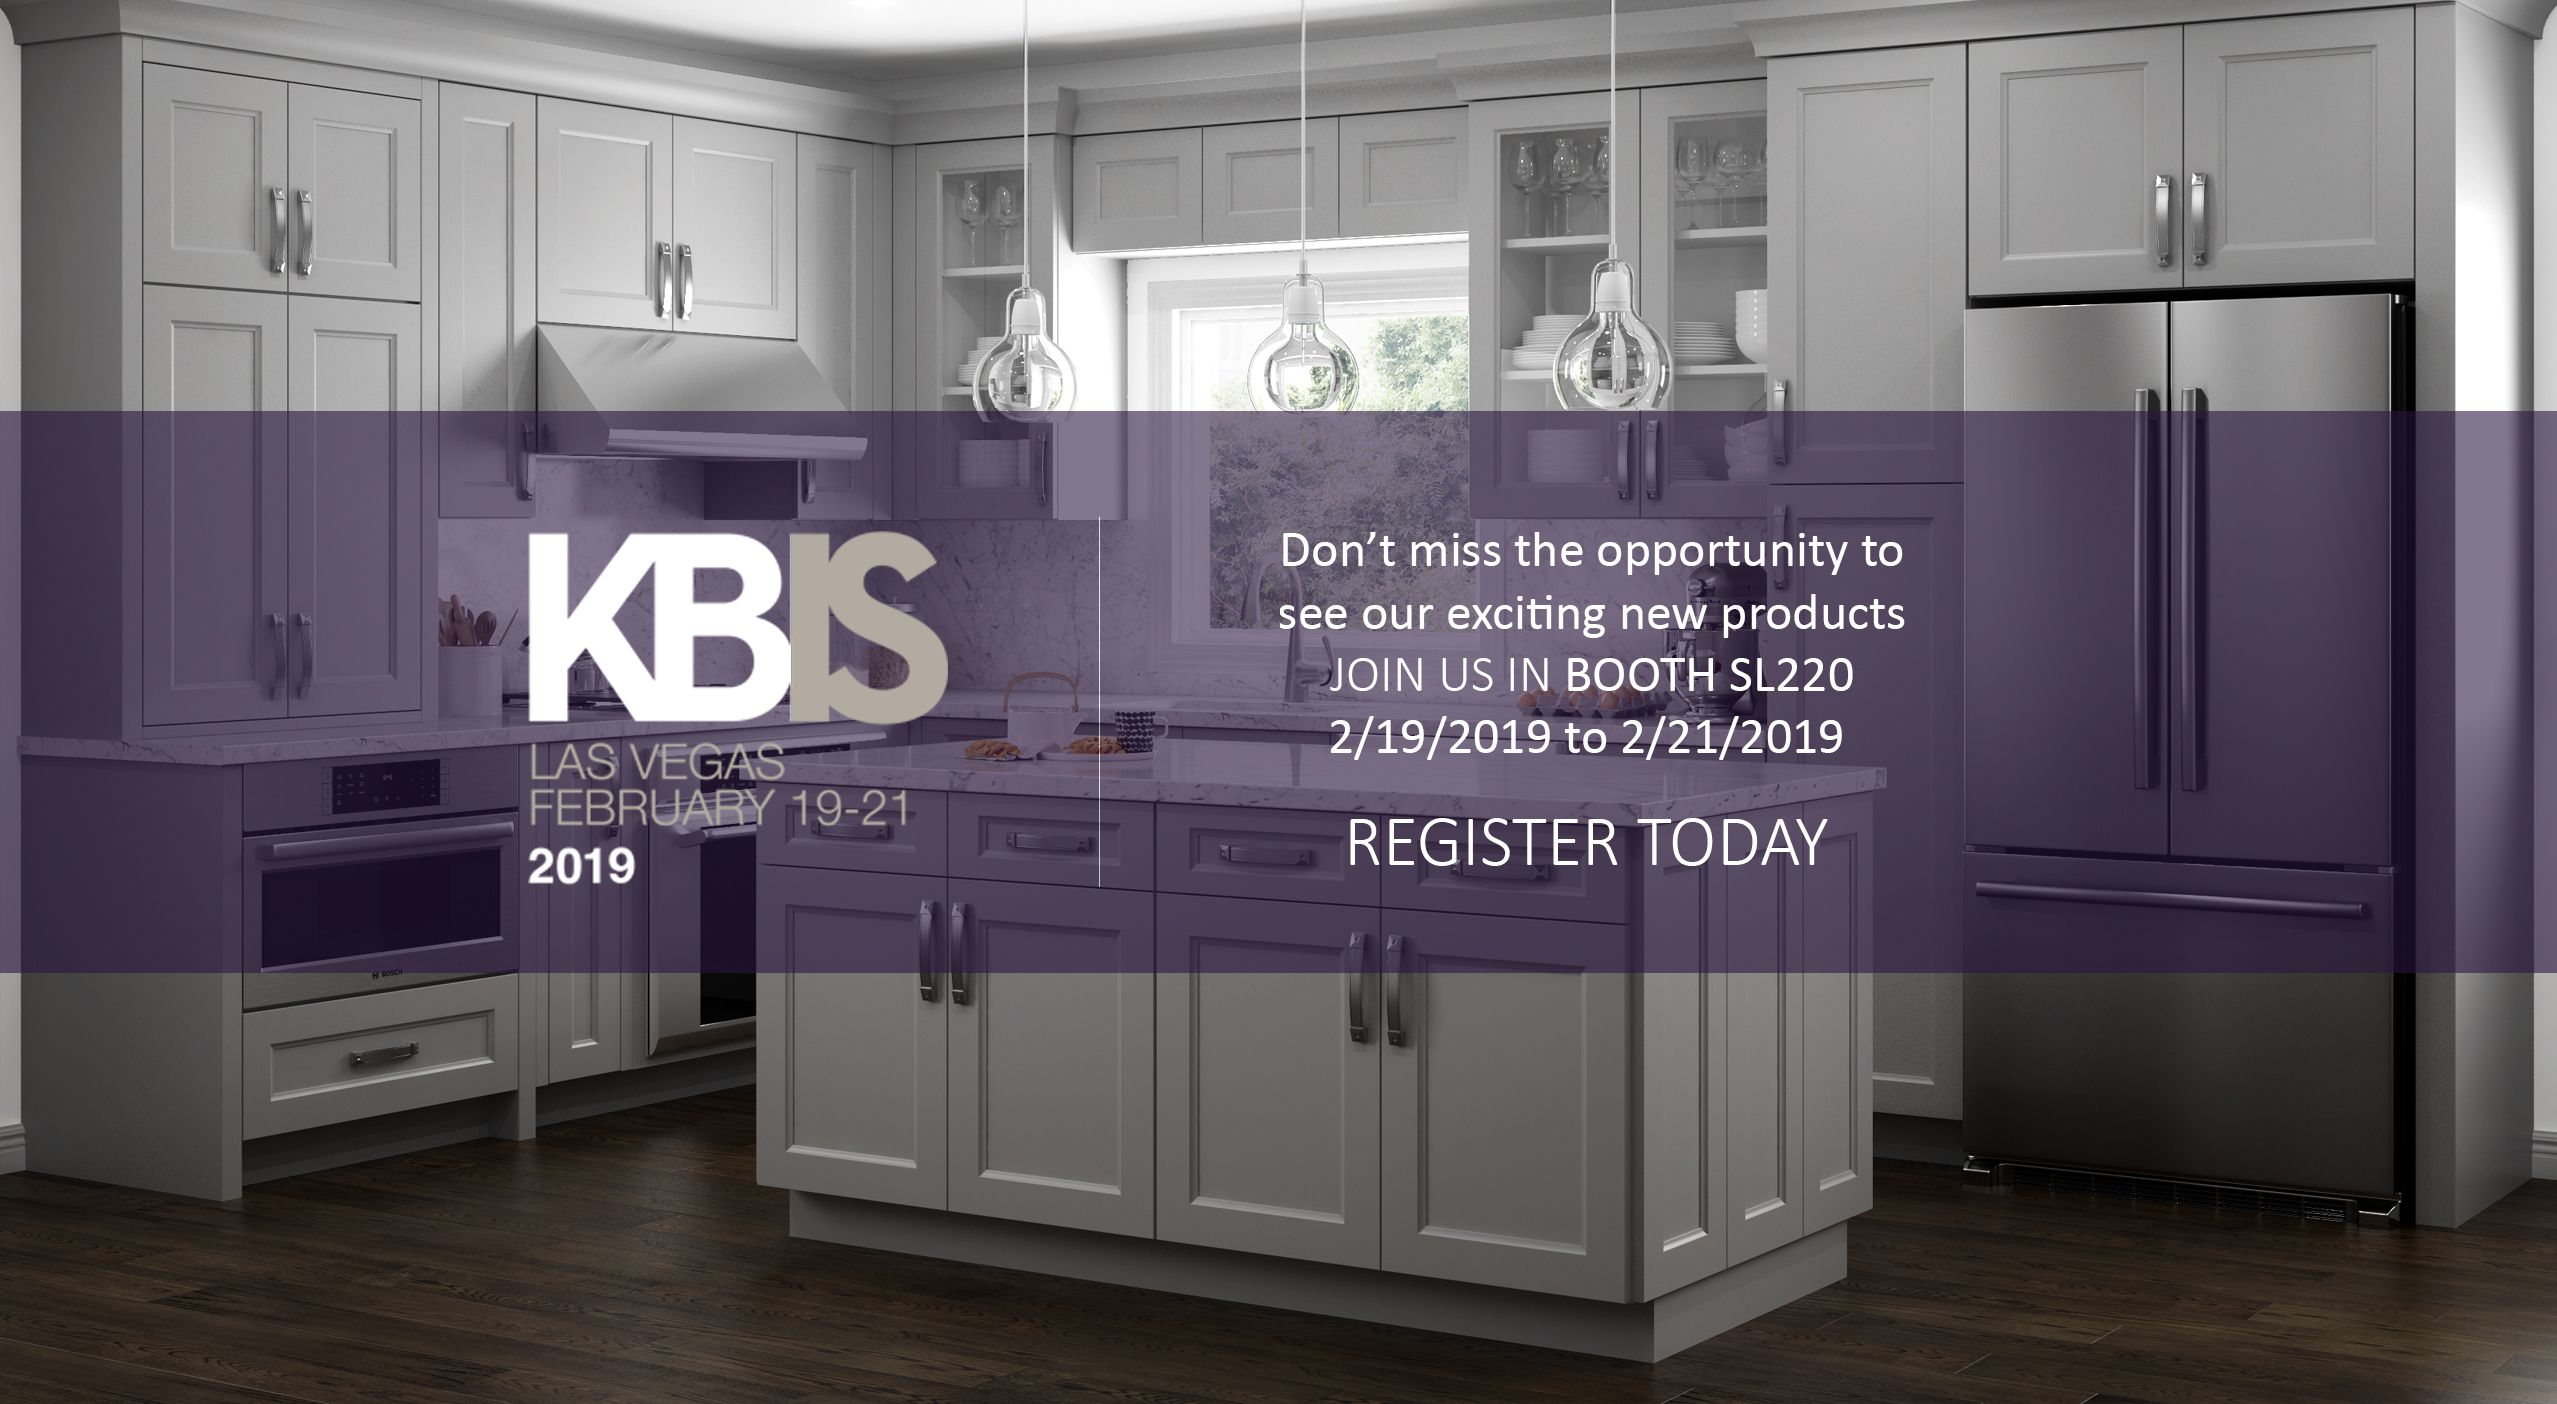 Come And Join Us On February 19 21 In Vegas See Our Exciting New Products Use Registration Code De Kitchen And Bath Design Warehouse Kitchen Kitchen And Bath